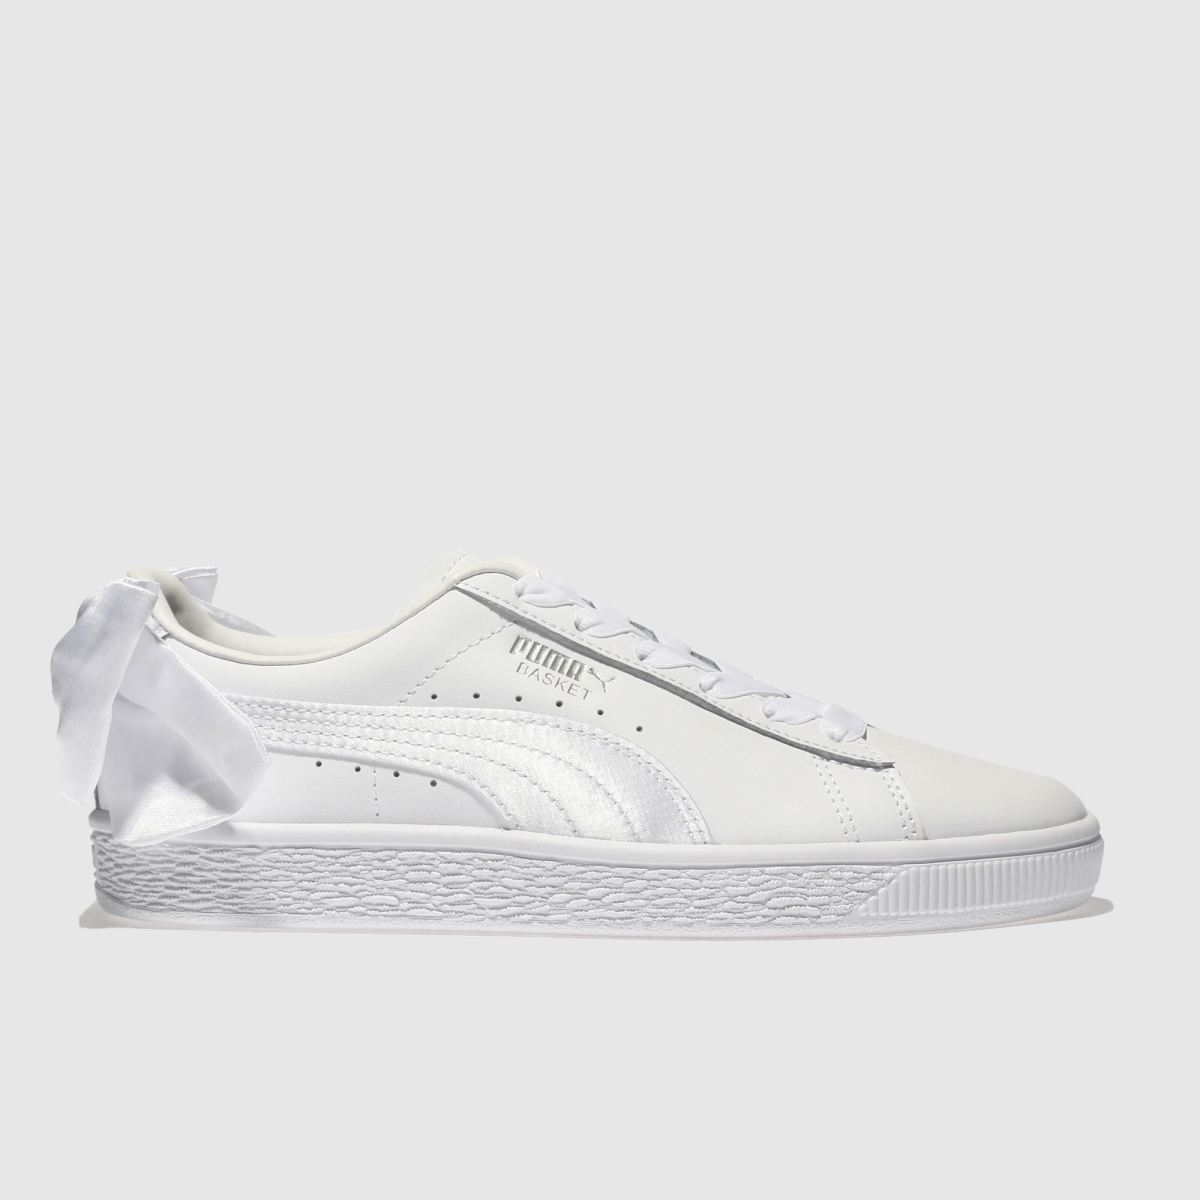 Puma White Basket Bow Girls Youth Youth